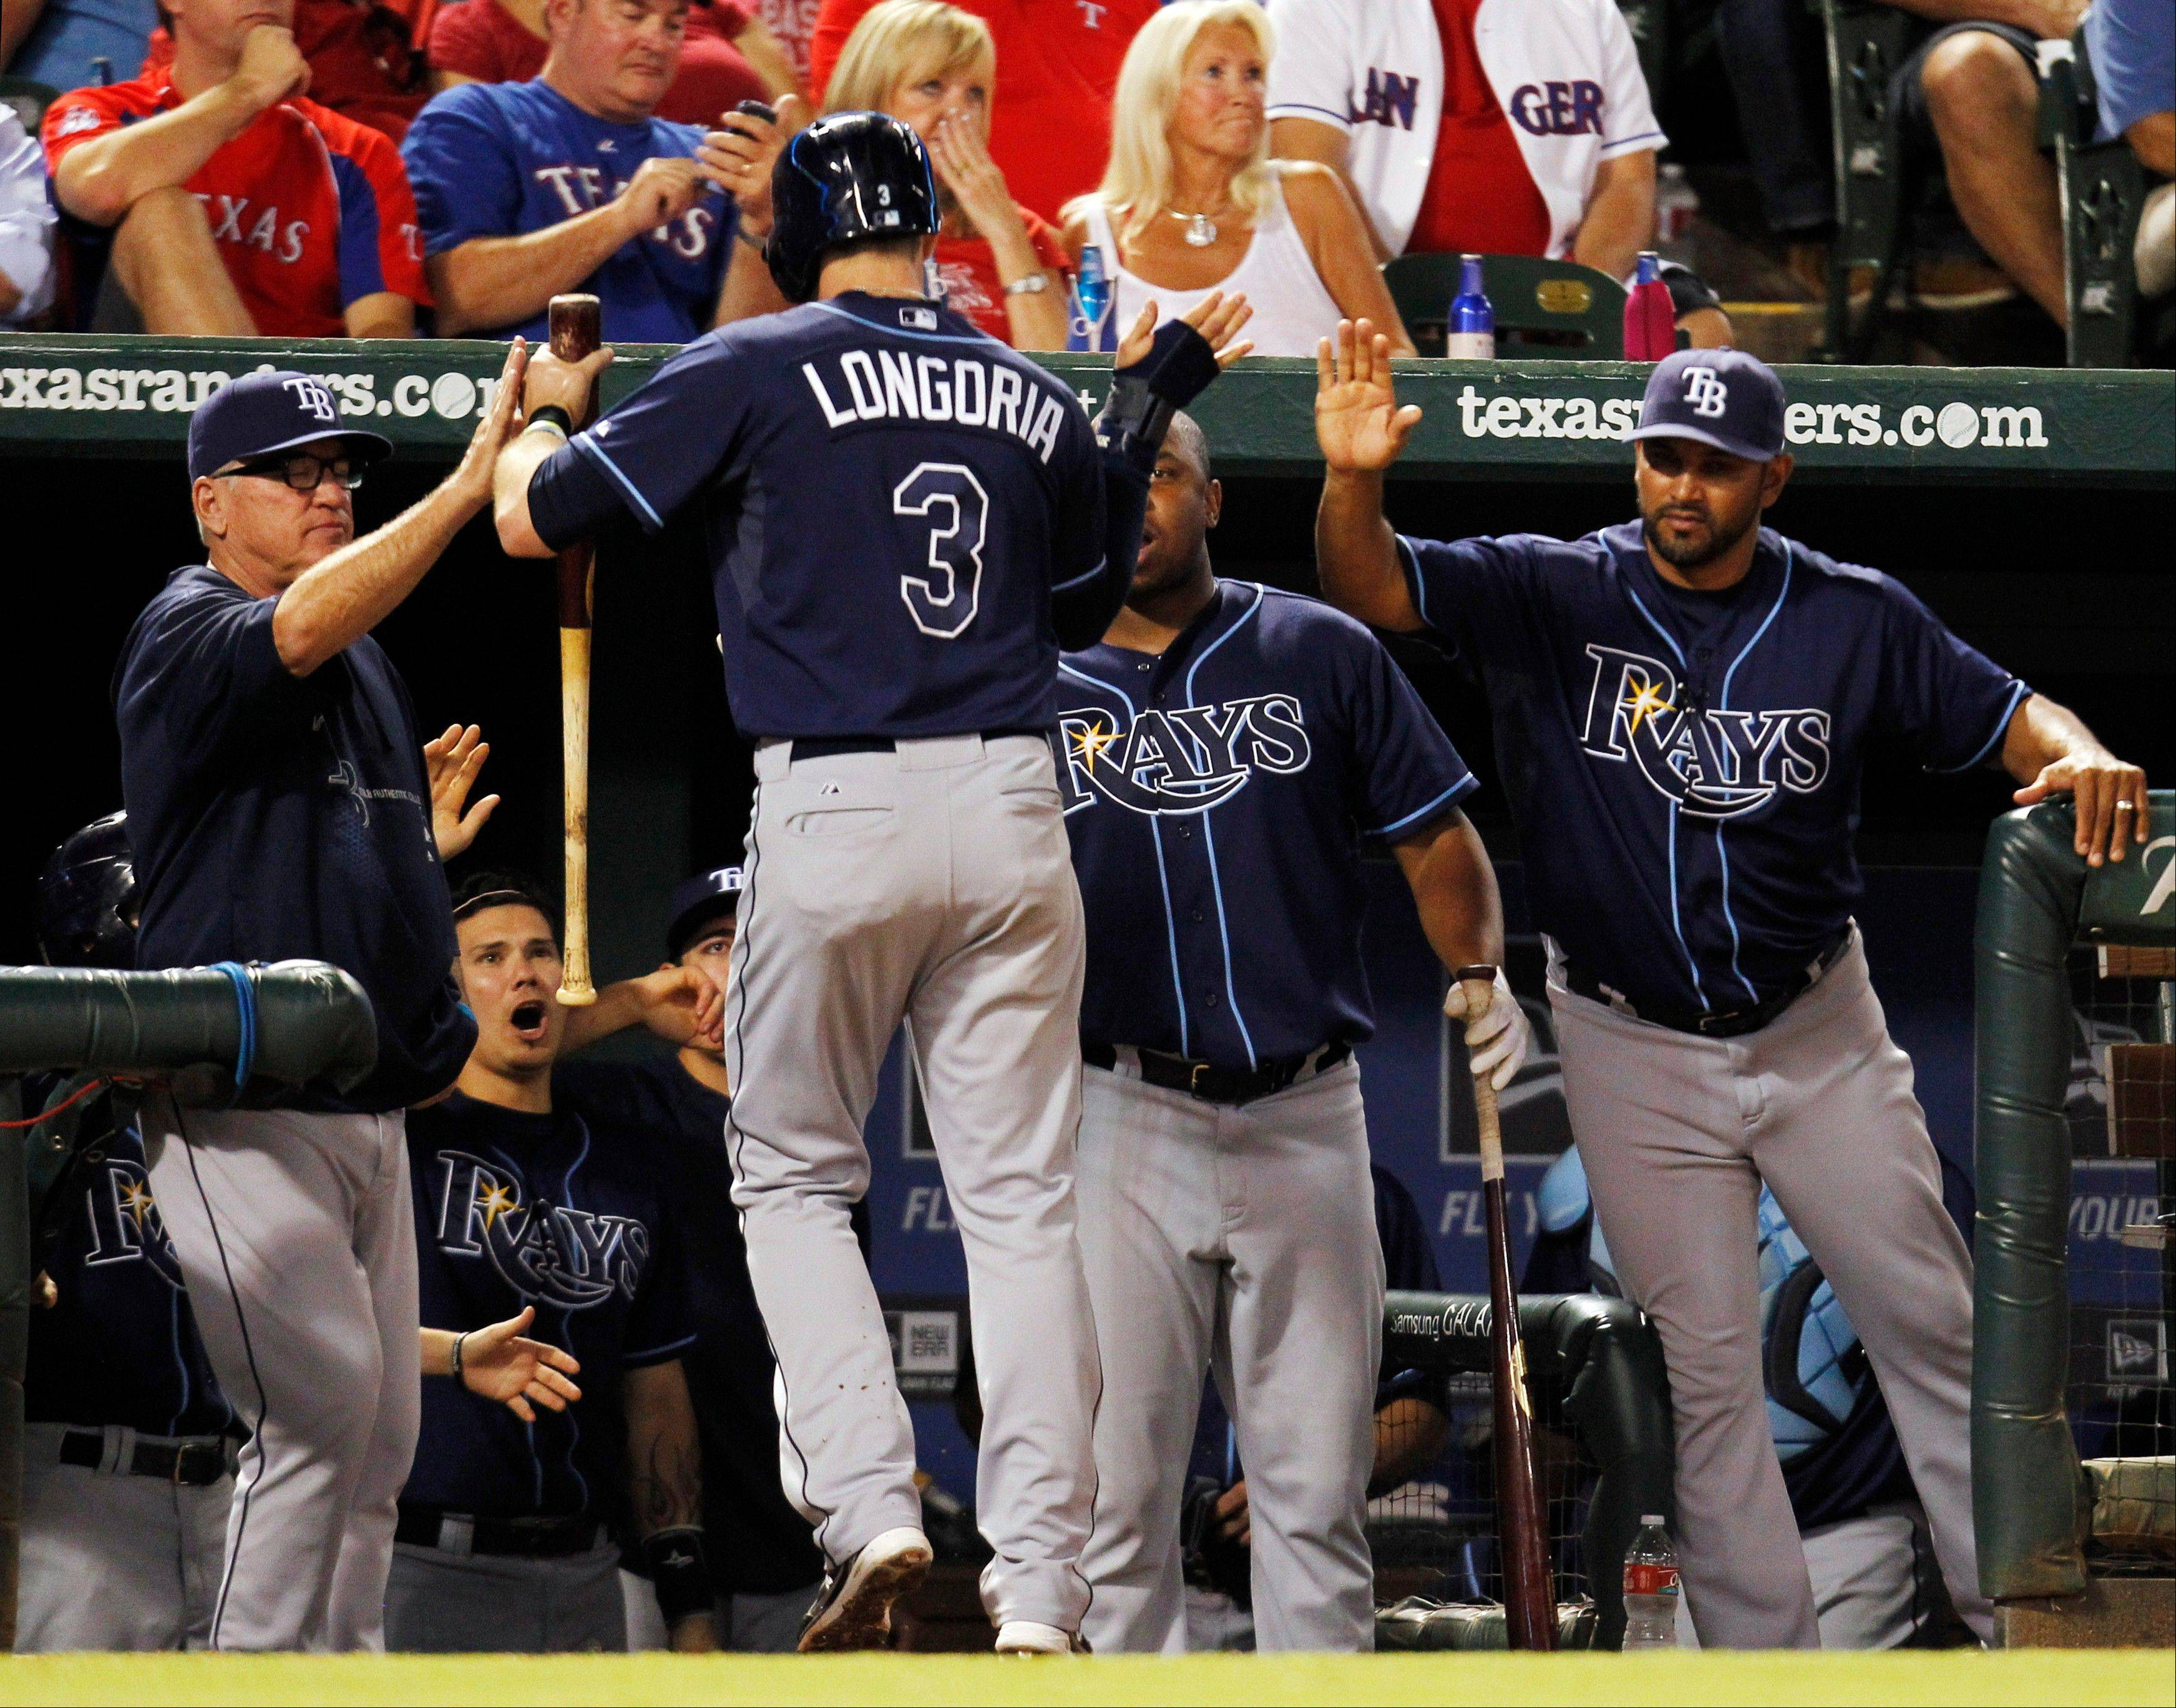 Tampa Bay�s Evan Longoria celebrates after scoring on a double by David DeJesus during the sixth inning Monday against the Texas Rangers in Arlington, Texas.